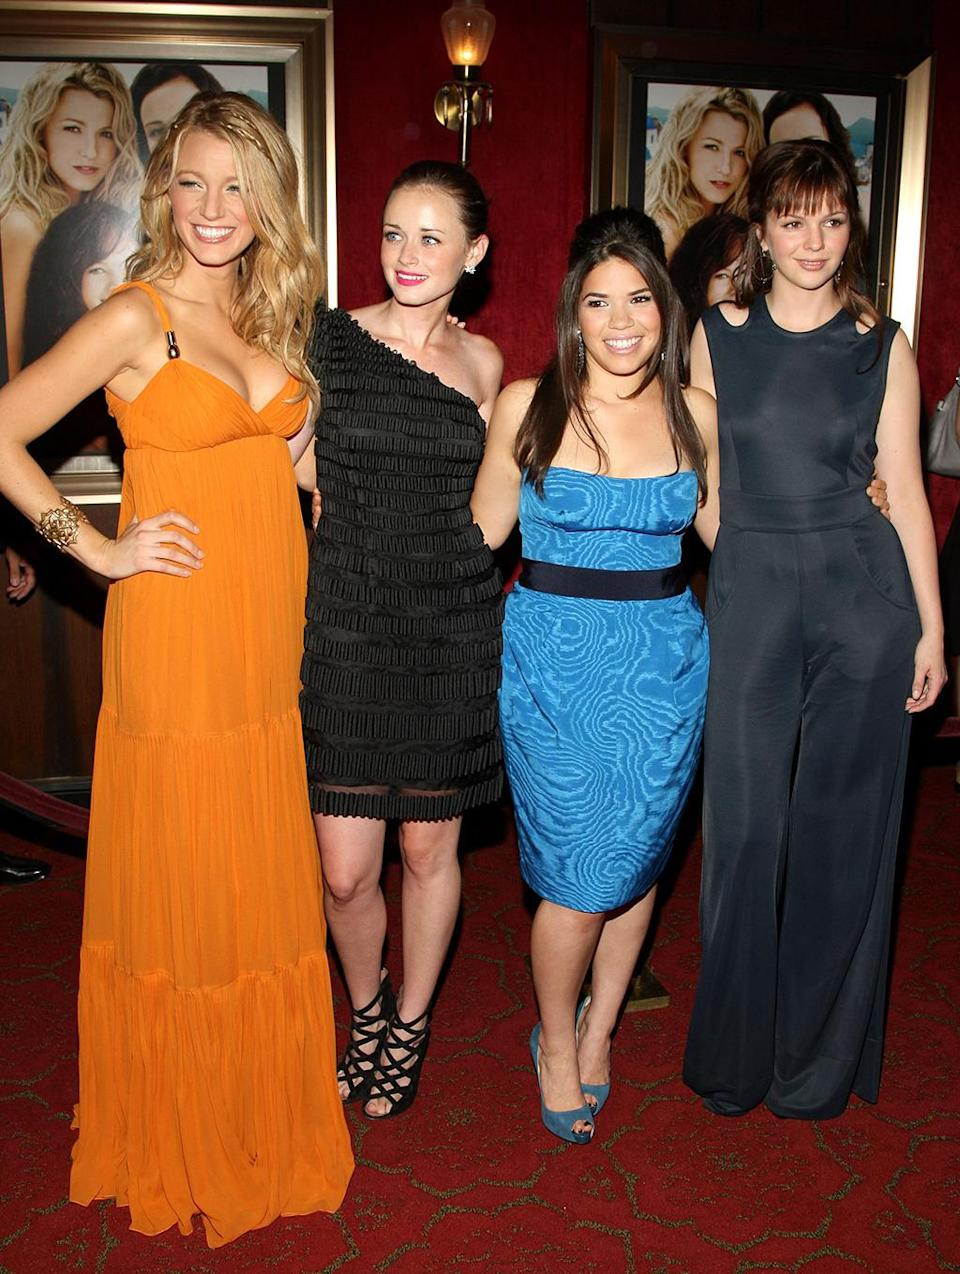 <p>Lively reprised her role as Bridget in <i>The Sisterhood of the Traveling Pants 2</i>. She joins co-stars Alexis Bledel, America Ferrera, and Amber Tamblyn at the premiere on July 28, 2008. <i>(Photo: Stephen Lovekin/Getty Images)</i></p>